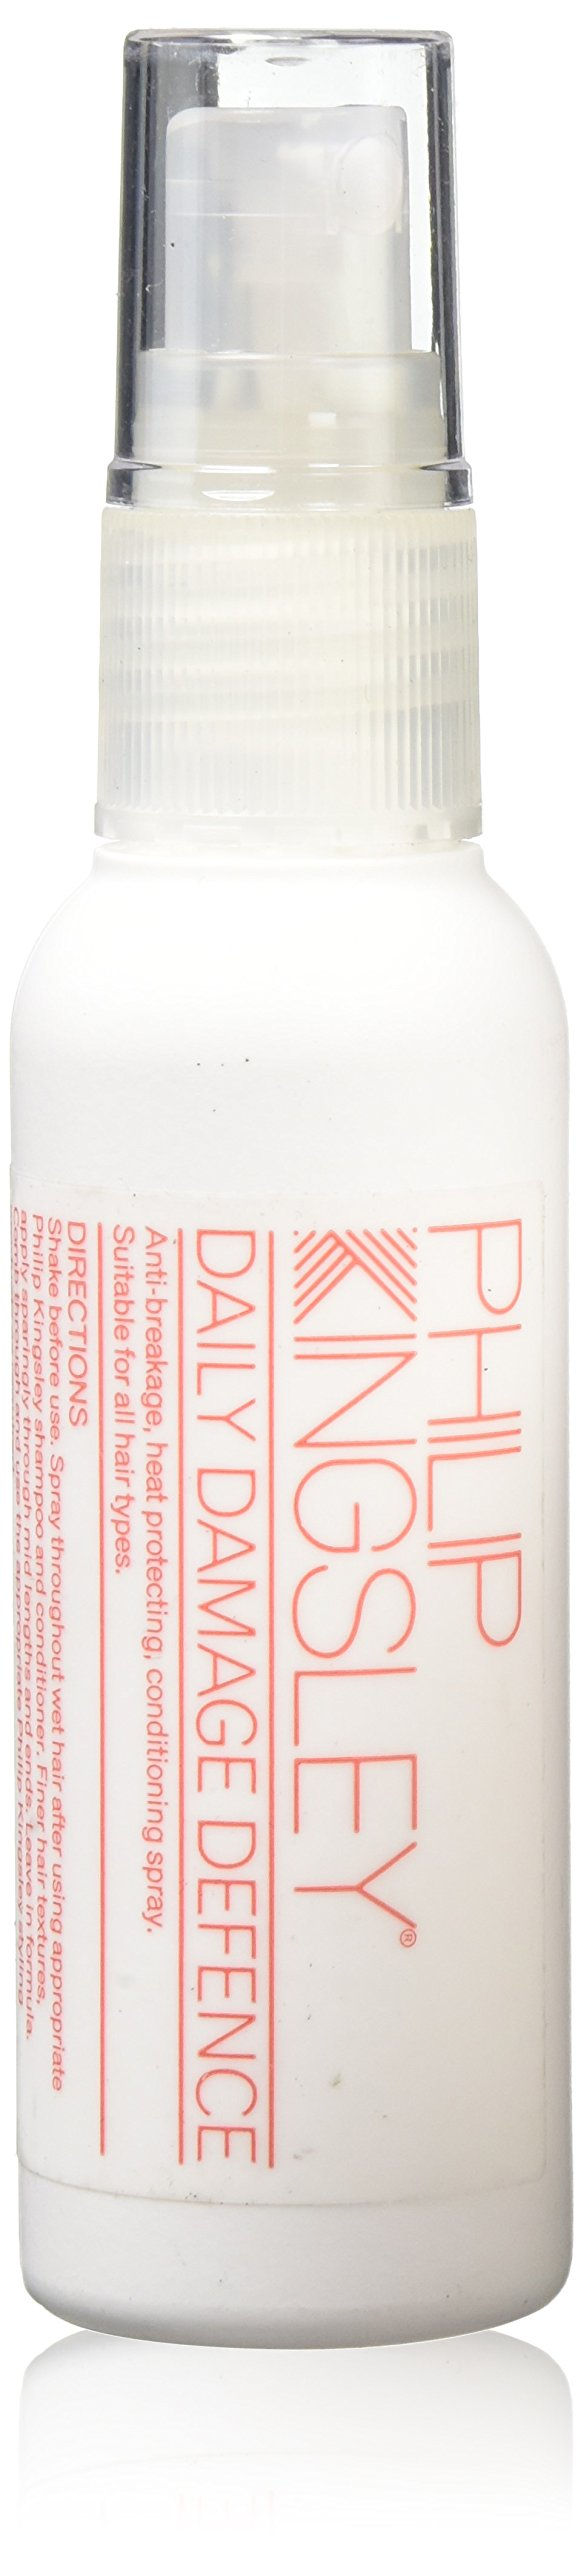 Philip Kingsley Daily Damage Defense Conditioning Spray, 2.03 Ounce